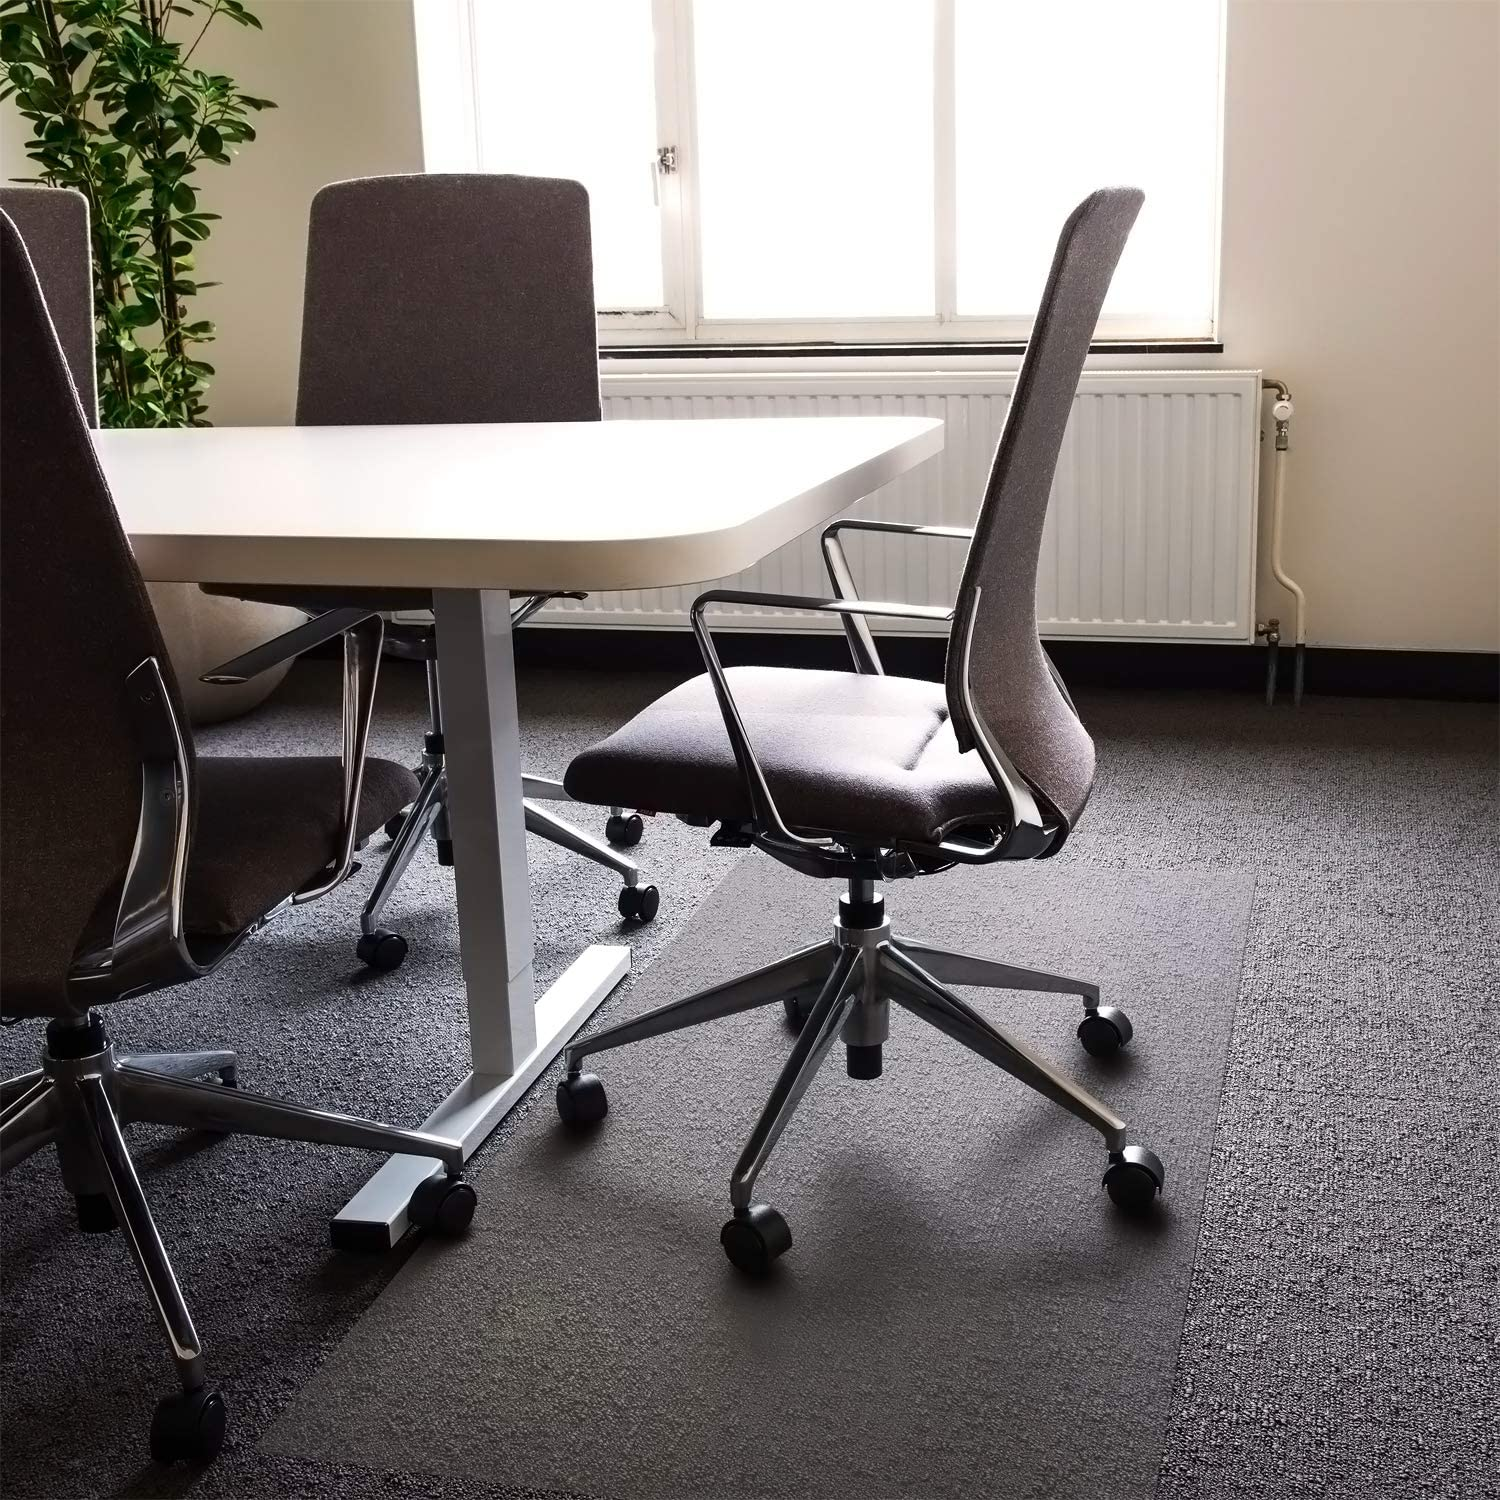 Amazon Com Floortex Polycarbonate Xxl Office Mat 48 X 118 For All Pile Carpets Model Fr1130023er Office Products